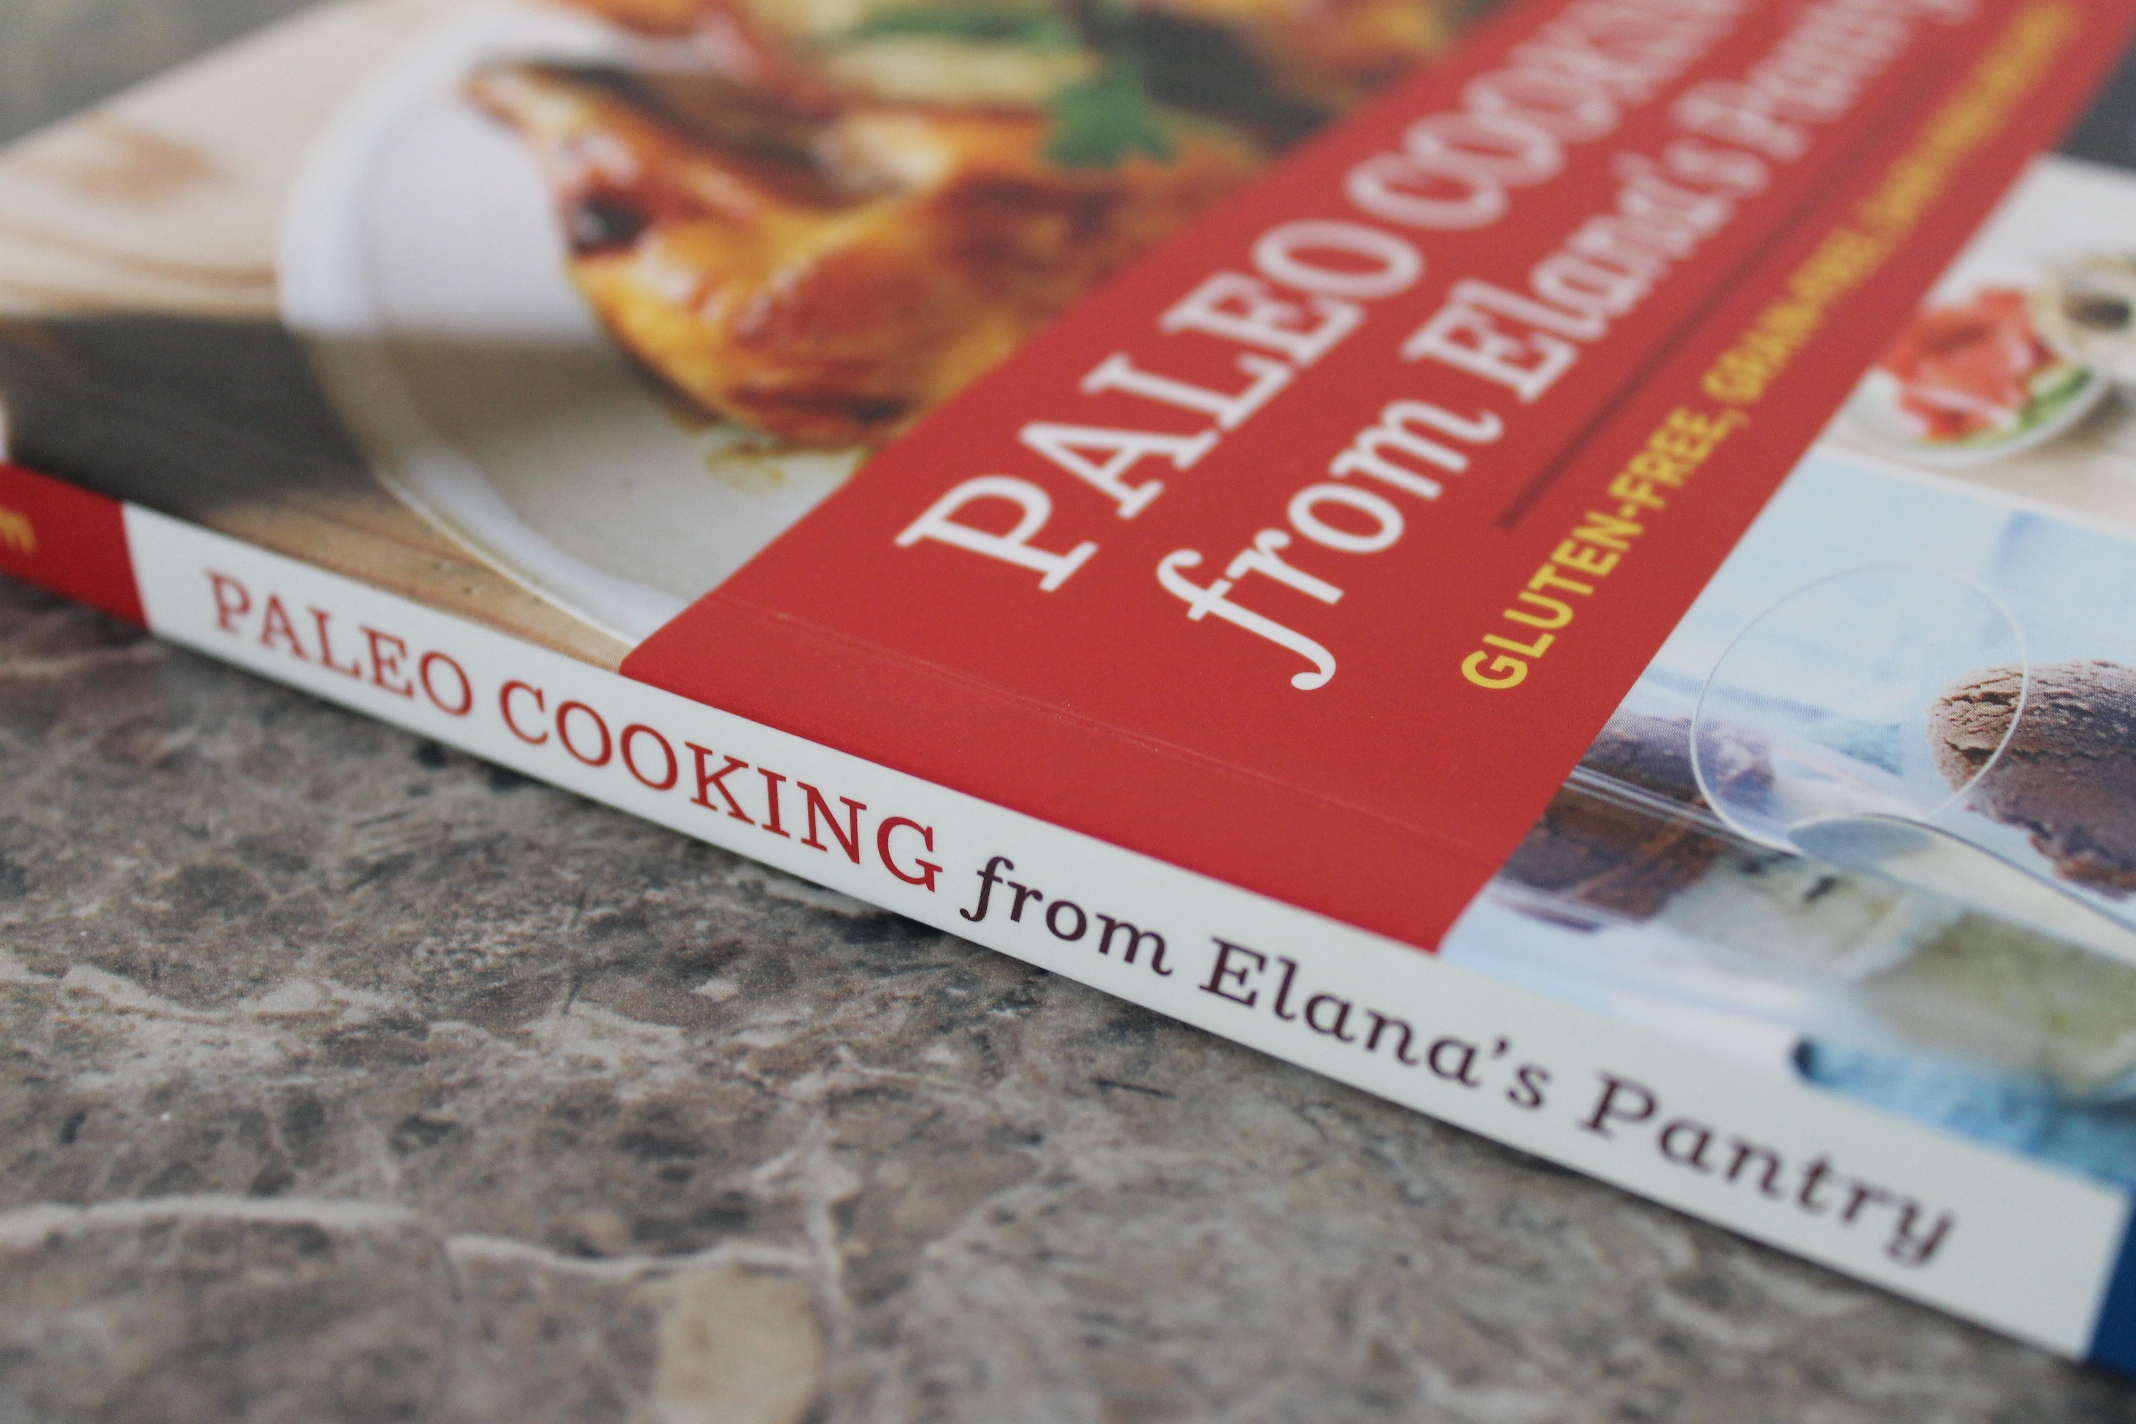 November Book Giveaway: Paleo Cooking from Elana's Pantry | Fed Up ...